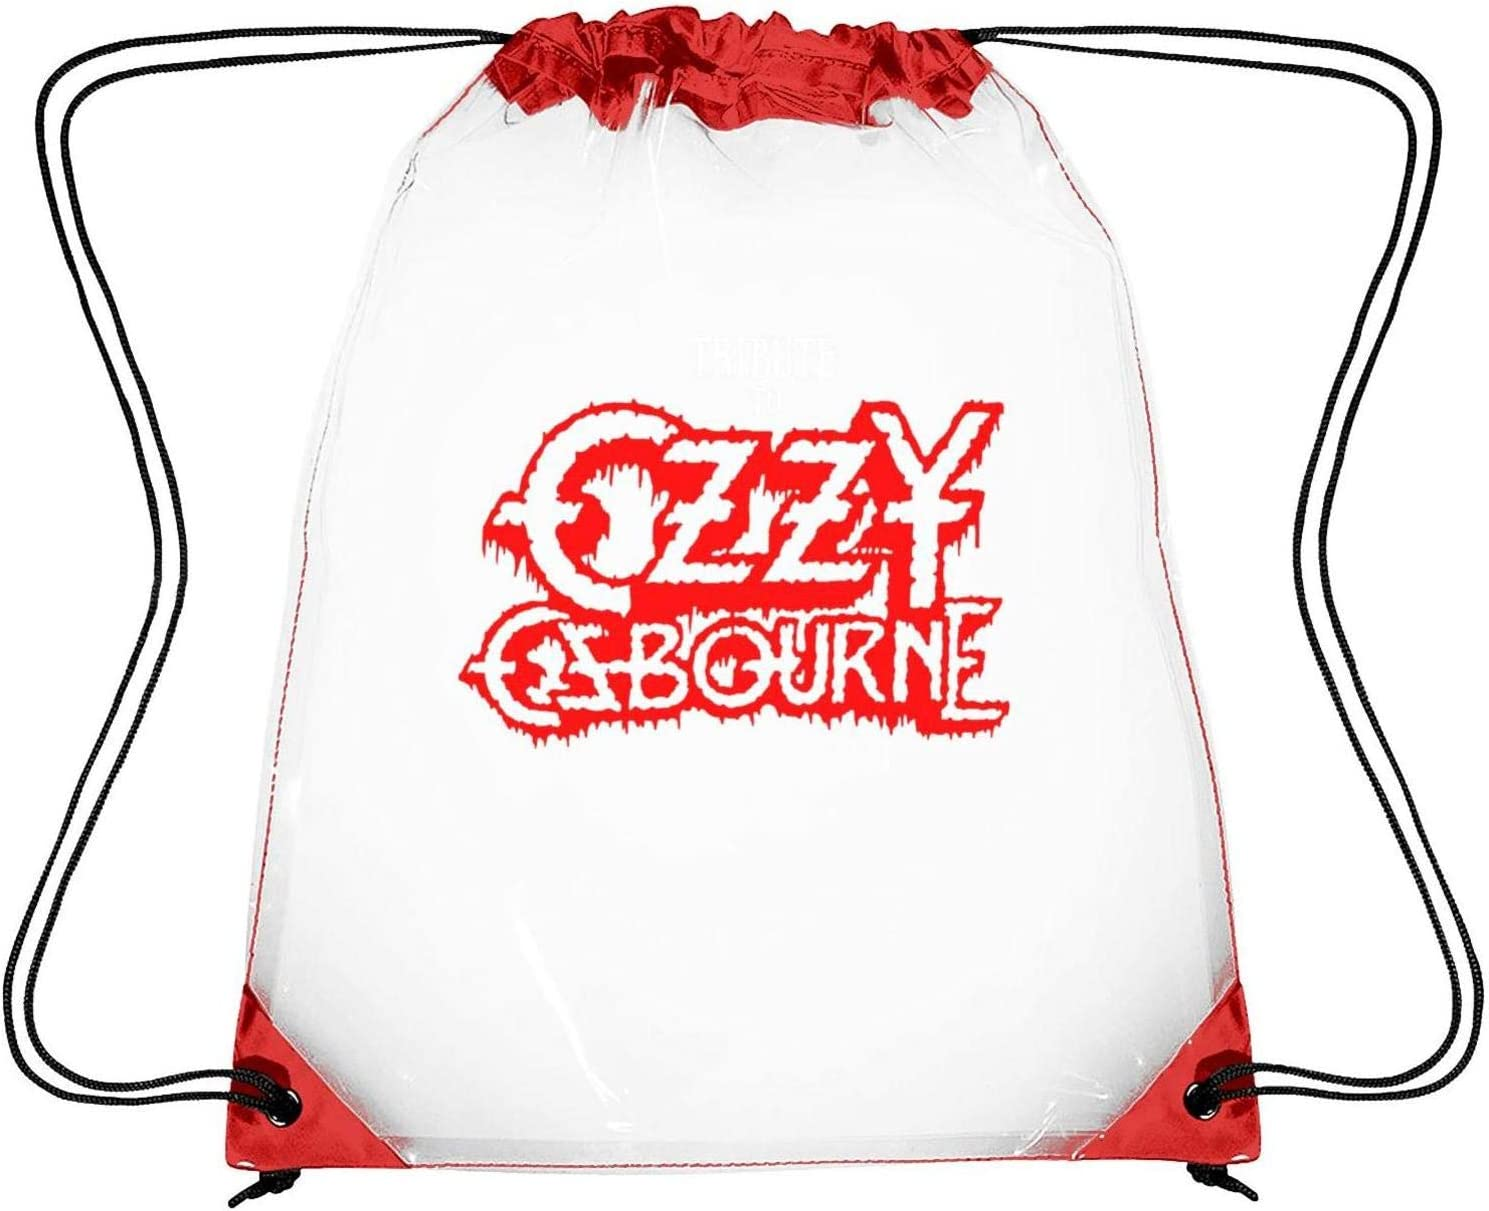 CAPXIEeY Clear Drawstring Backpack Ozzy Osbourne Mr Crowley Dancing Bag Gym Sports Travel Sack Pack for Men Women